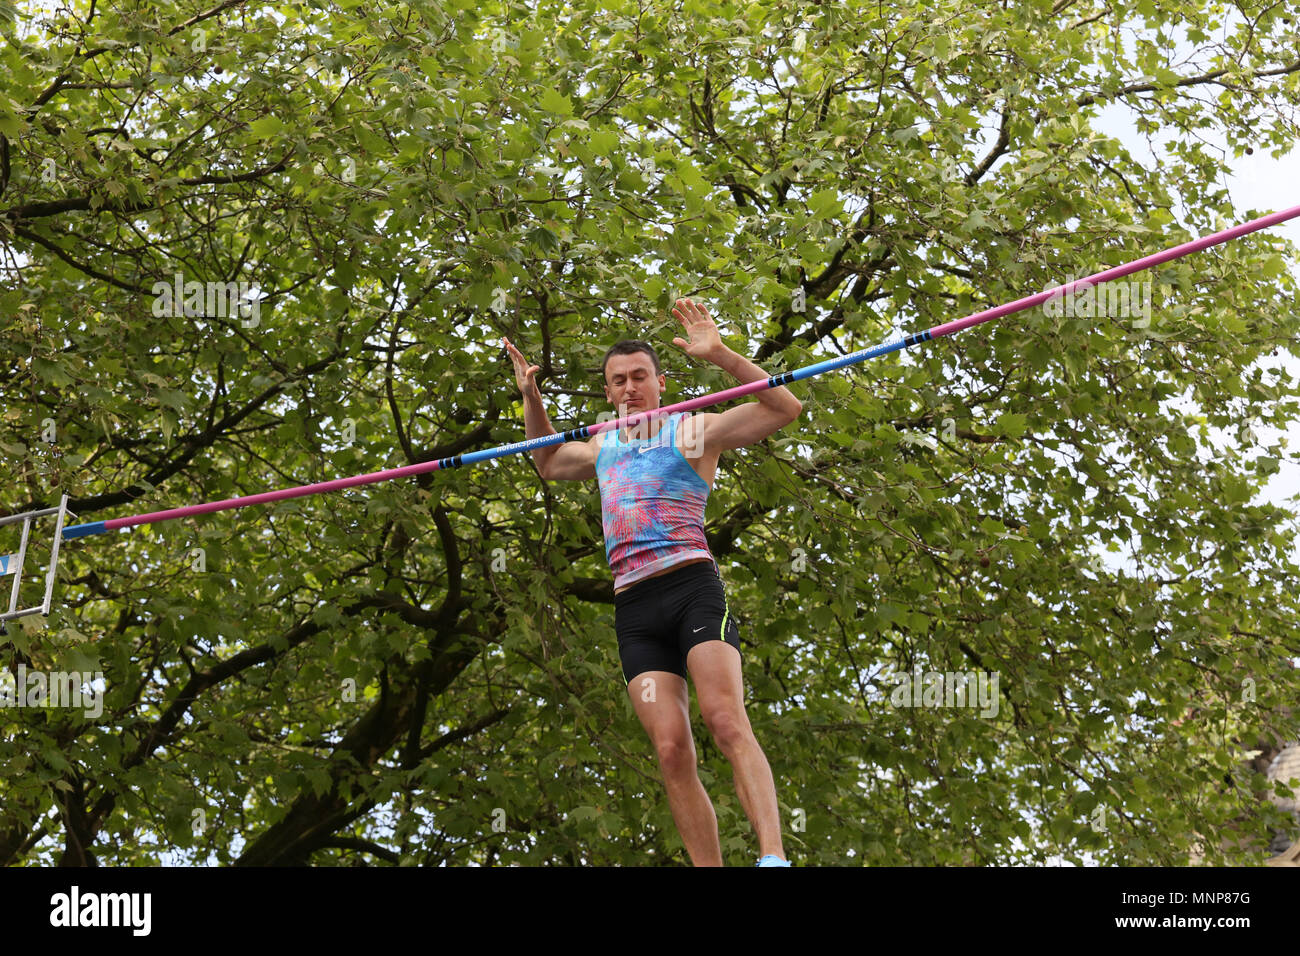 Manchester, UK. 18th May, 2018. Stanley Joseph catches his chin on the pole vault at the Arcadis Great City Games, Manchester,18th May, 2018 (C)Barbara Cook/Alamy Live News - Stock Image